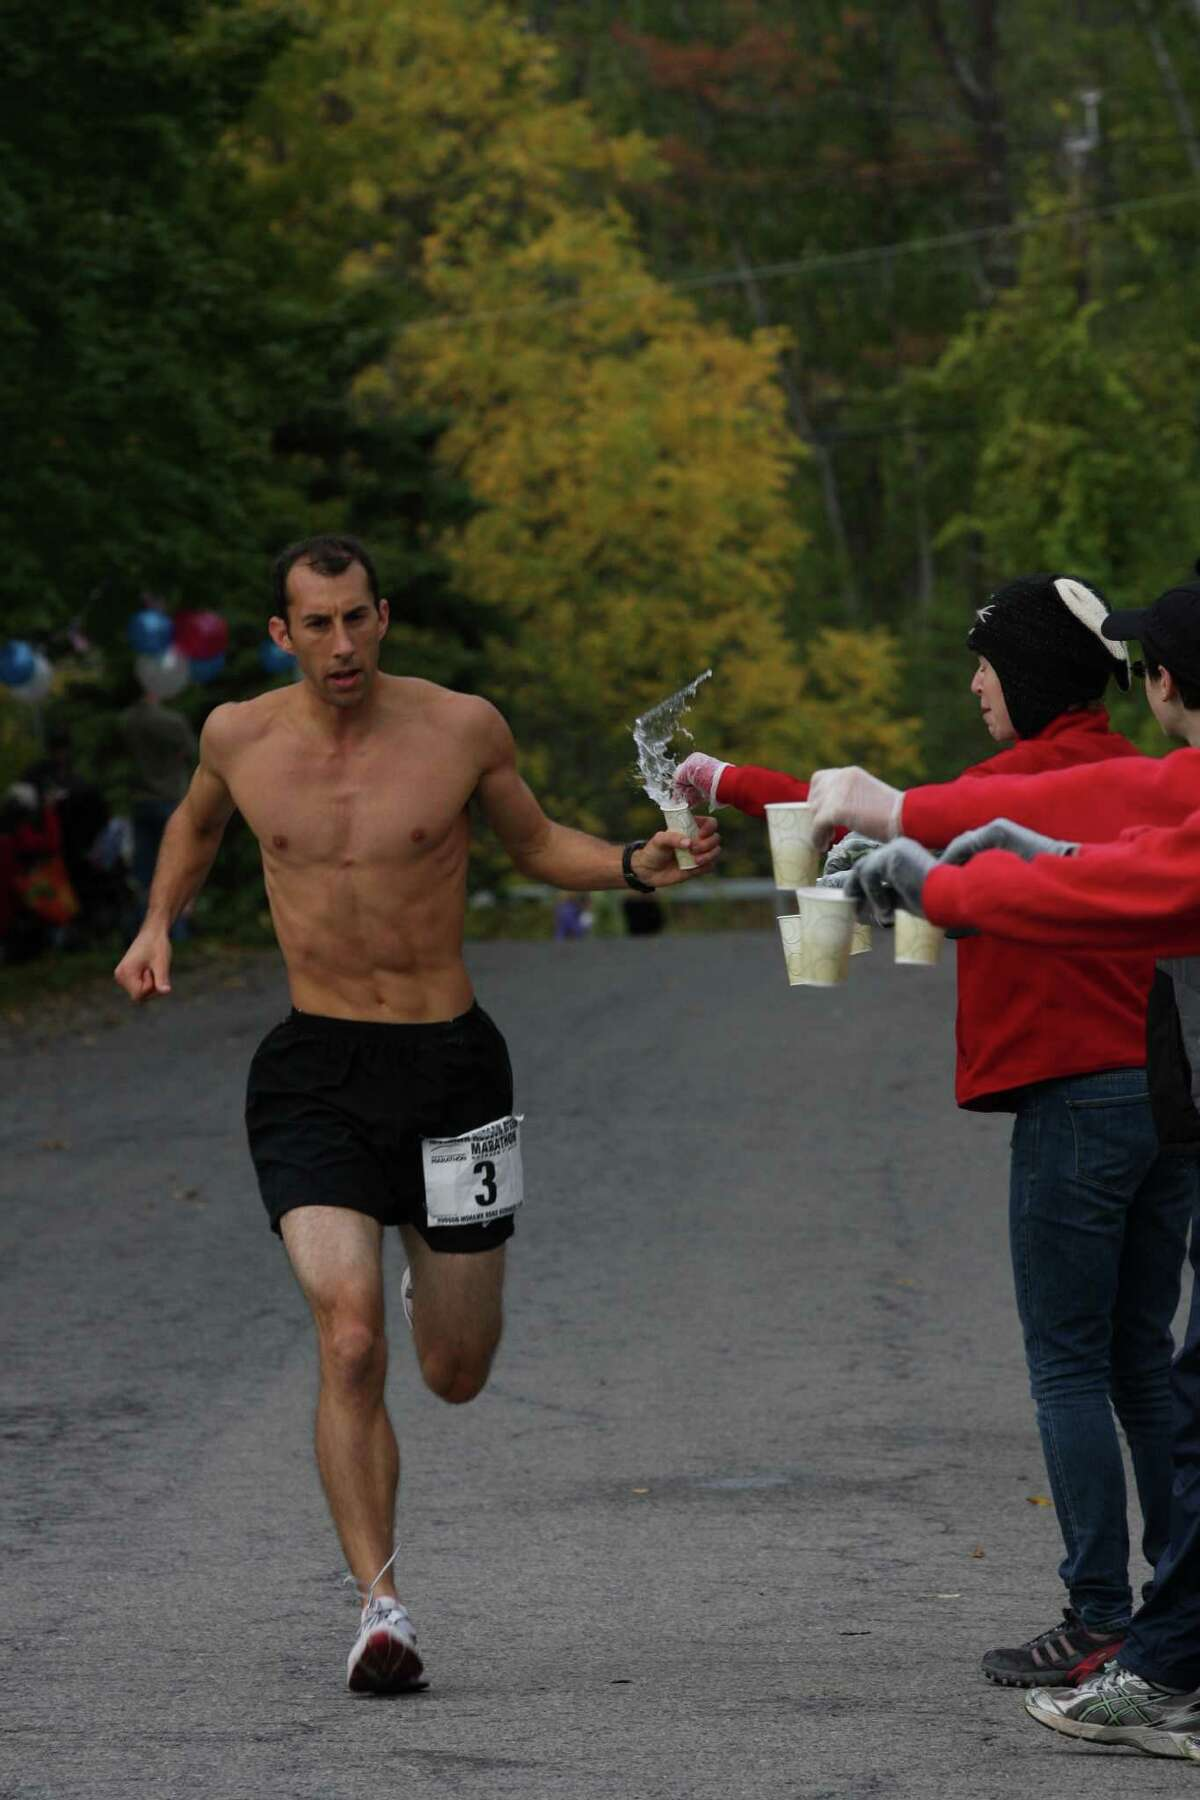 Third-place finisher Sean Gallagher of Clearwater, Fla., grabs some water during the Mohawk-Hudson River Marathon on Sunday, Oct. 7, 2012. (Courtesy of Bill Meehan)